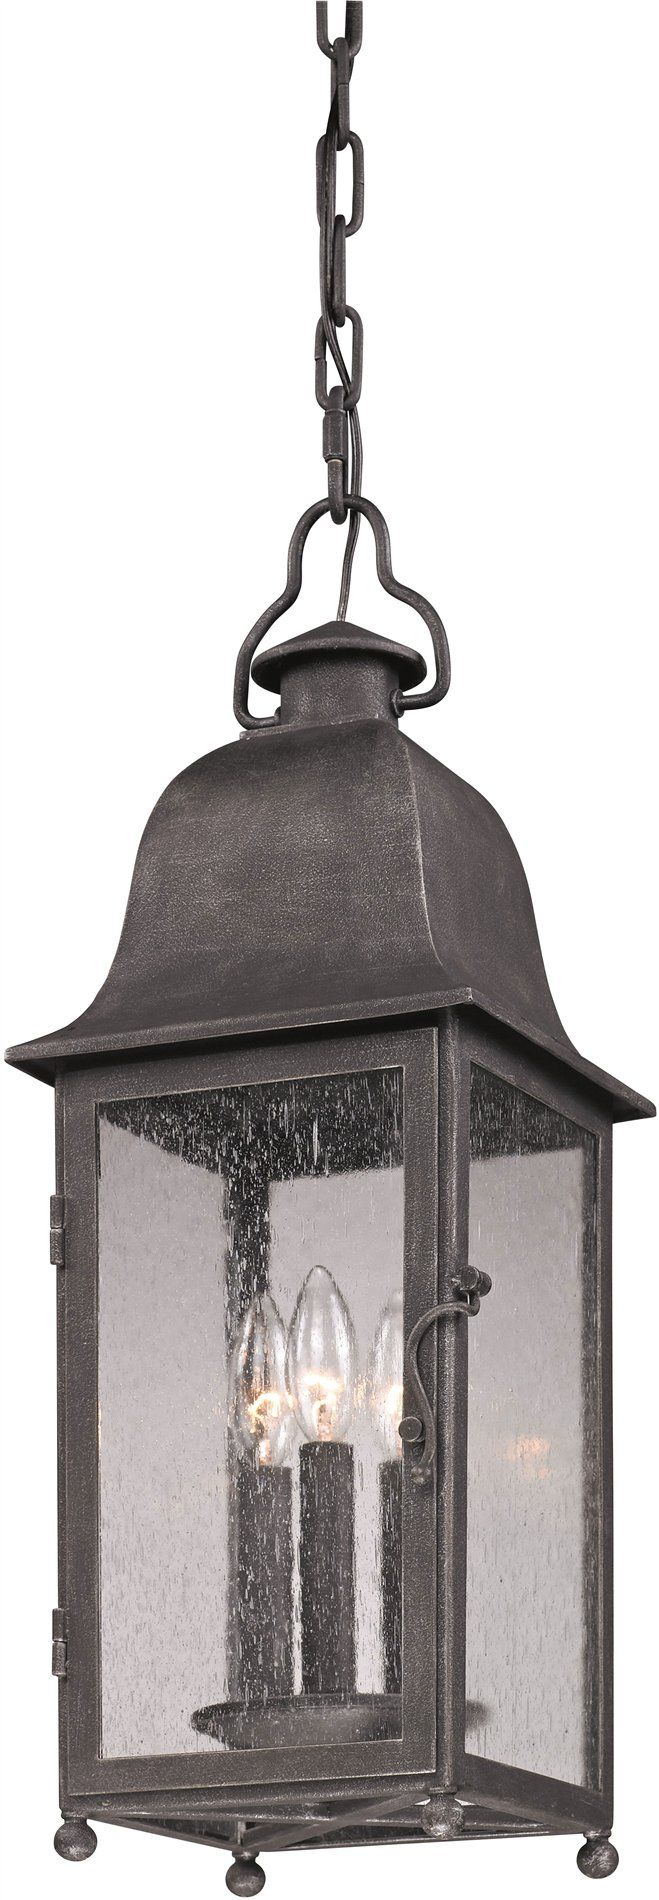 South Shore Decorating: Troy Lighting F3217 Larchmont Transitional Outdoor Hanging Light TL-F3217